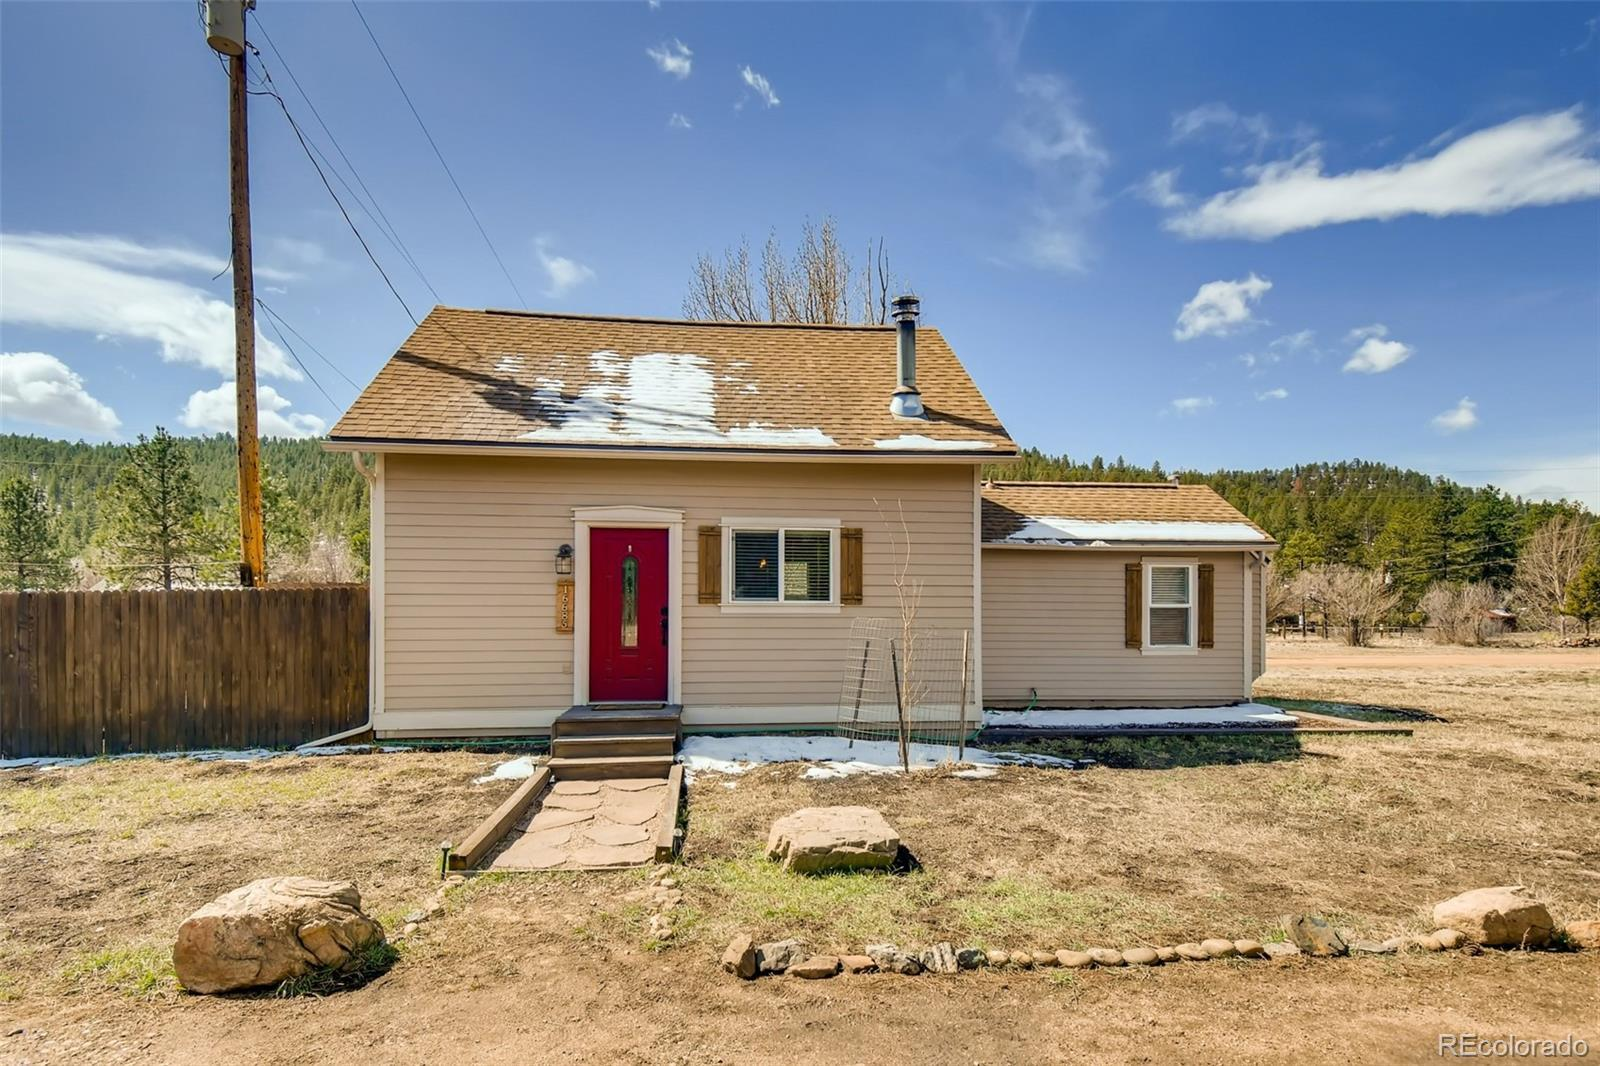 16685 county road 126, Pine, CO 80470 - #: 2903657